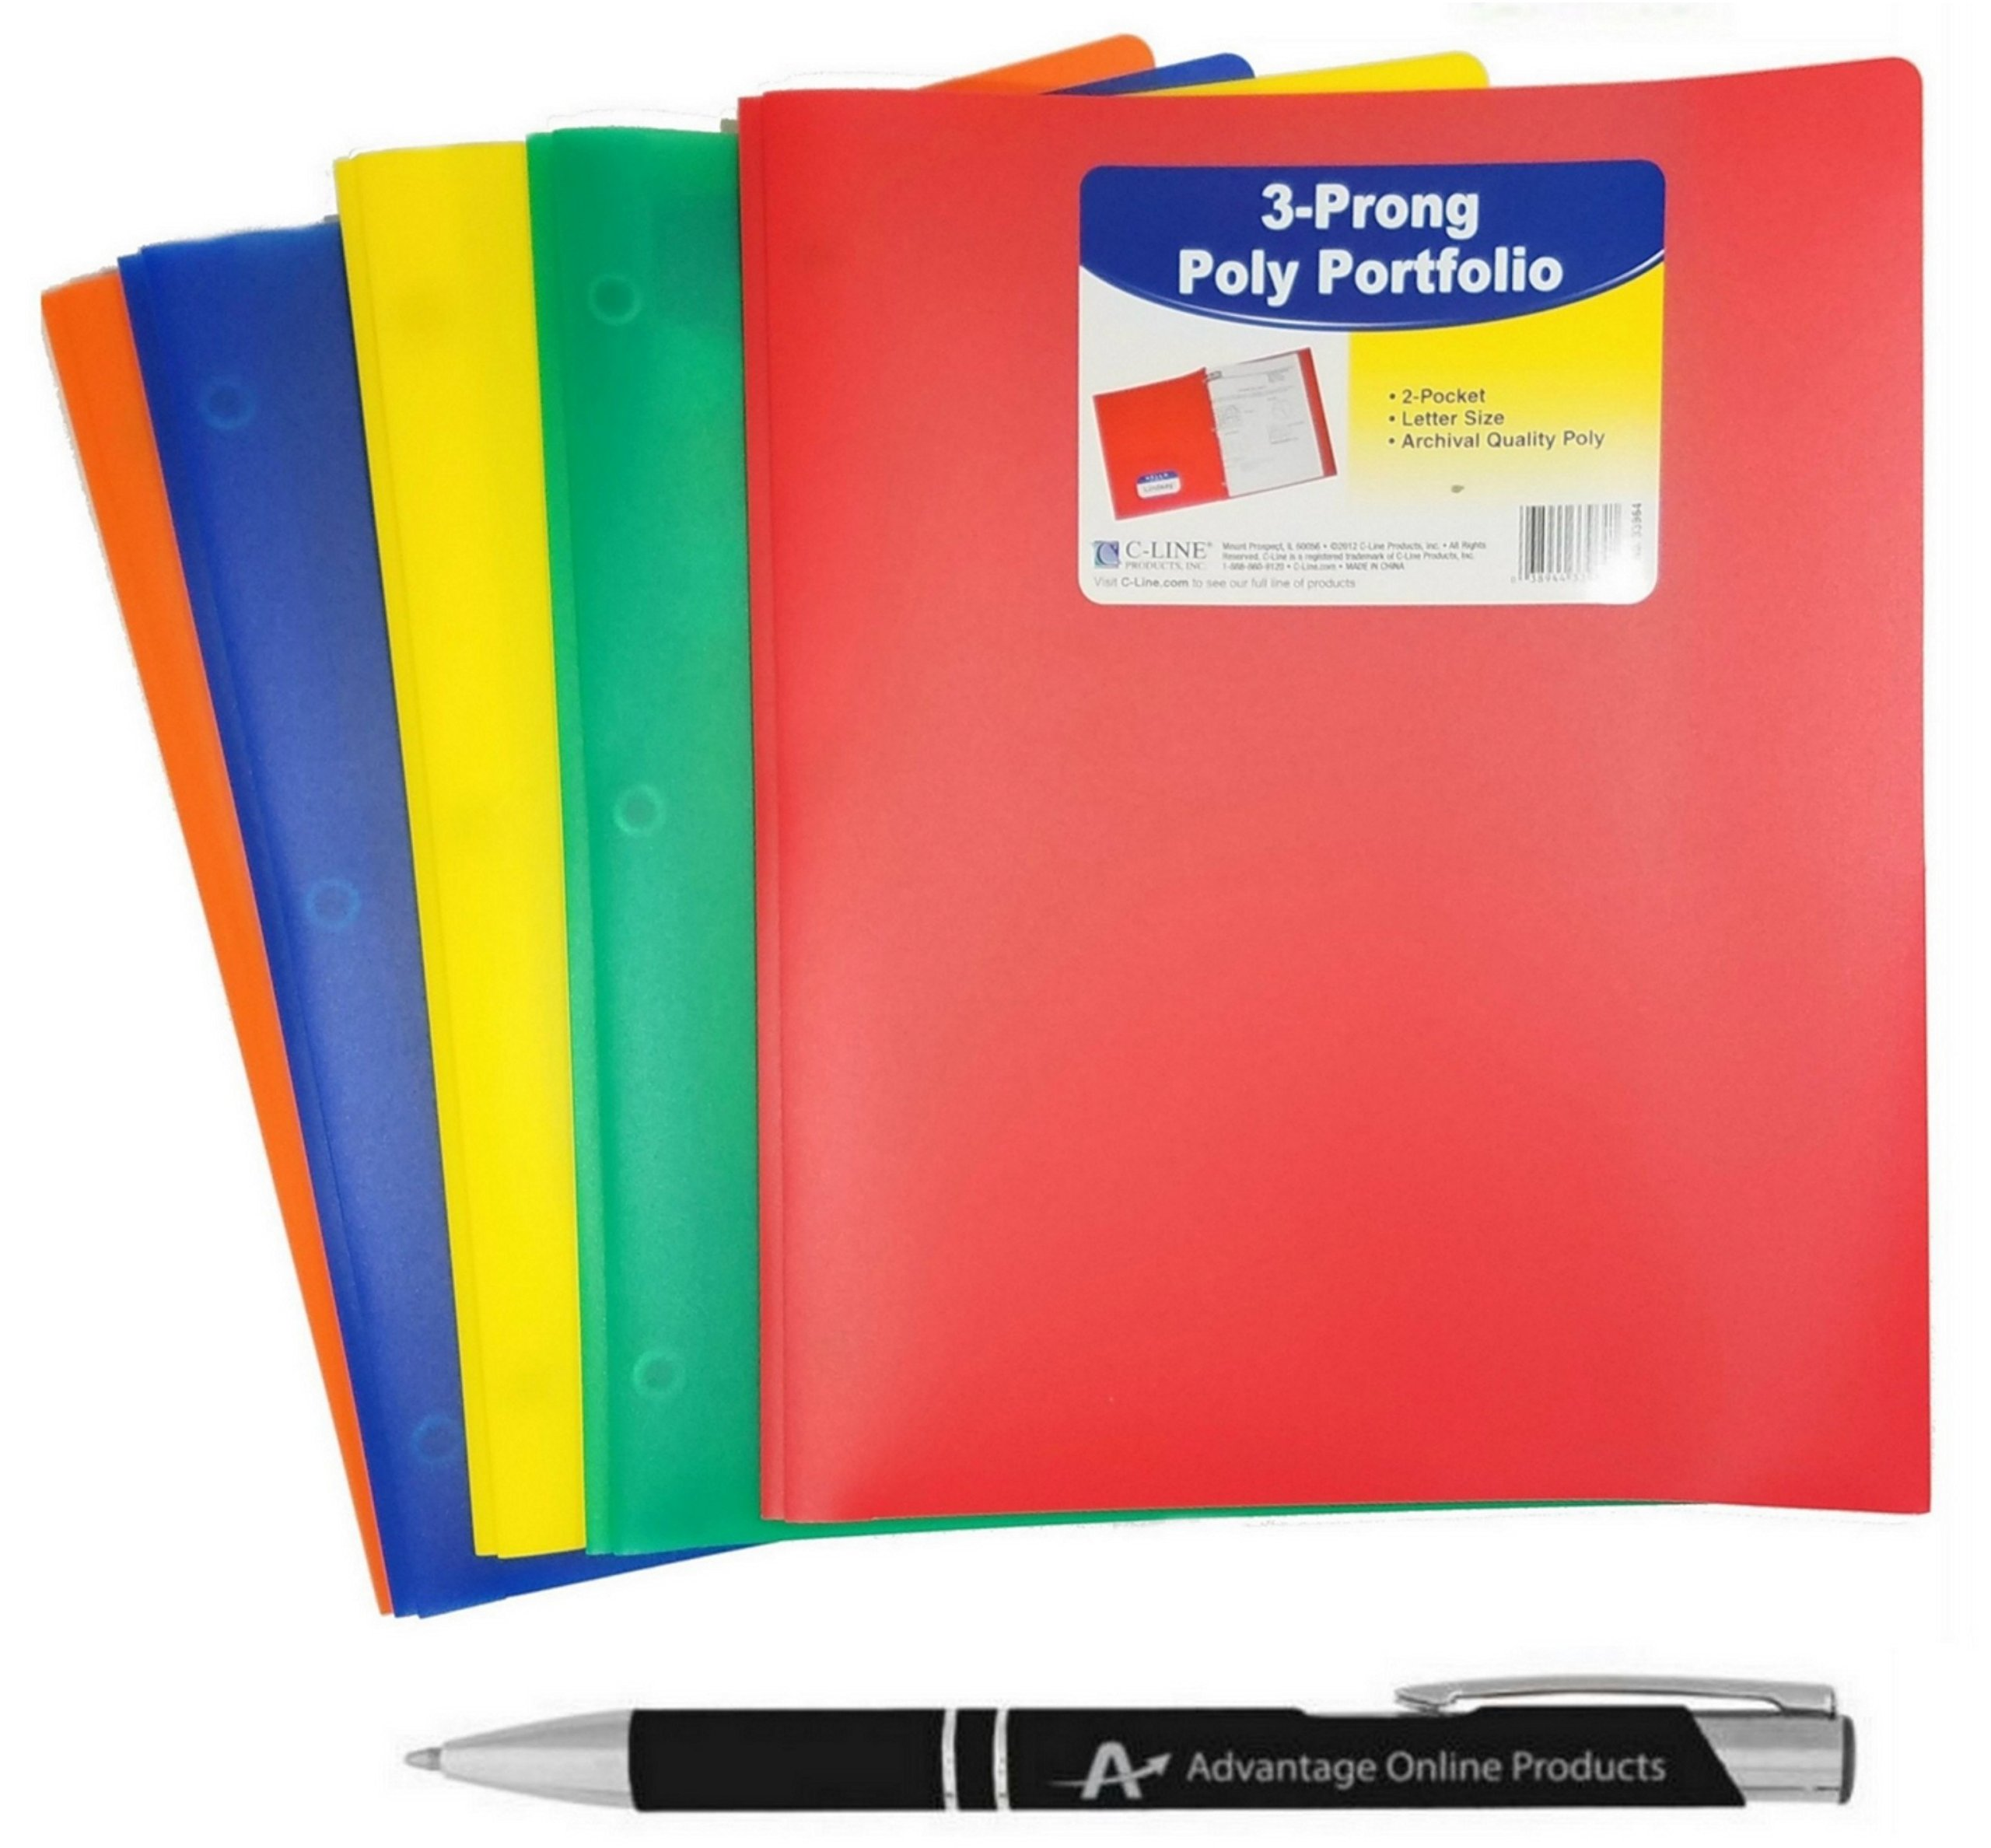 5-Pack C-Line Two-Pocket Heavyweight Poly Portfolio with Prongs, For Letter Size Papers, Includes Business Card Slot, 5-pack With One of Each Blue, Green, Orange, Red and Yellow